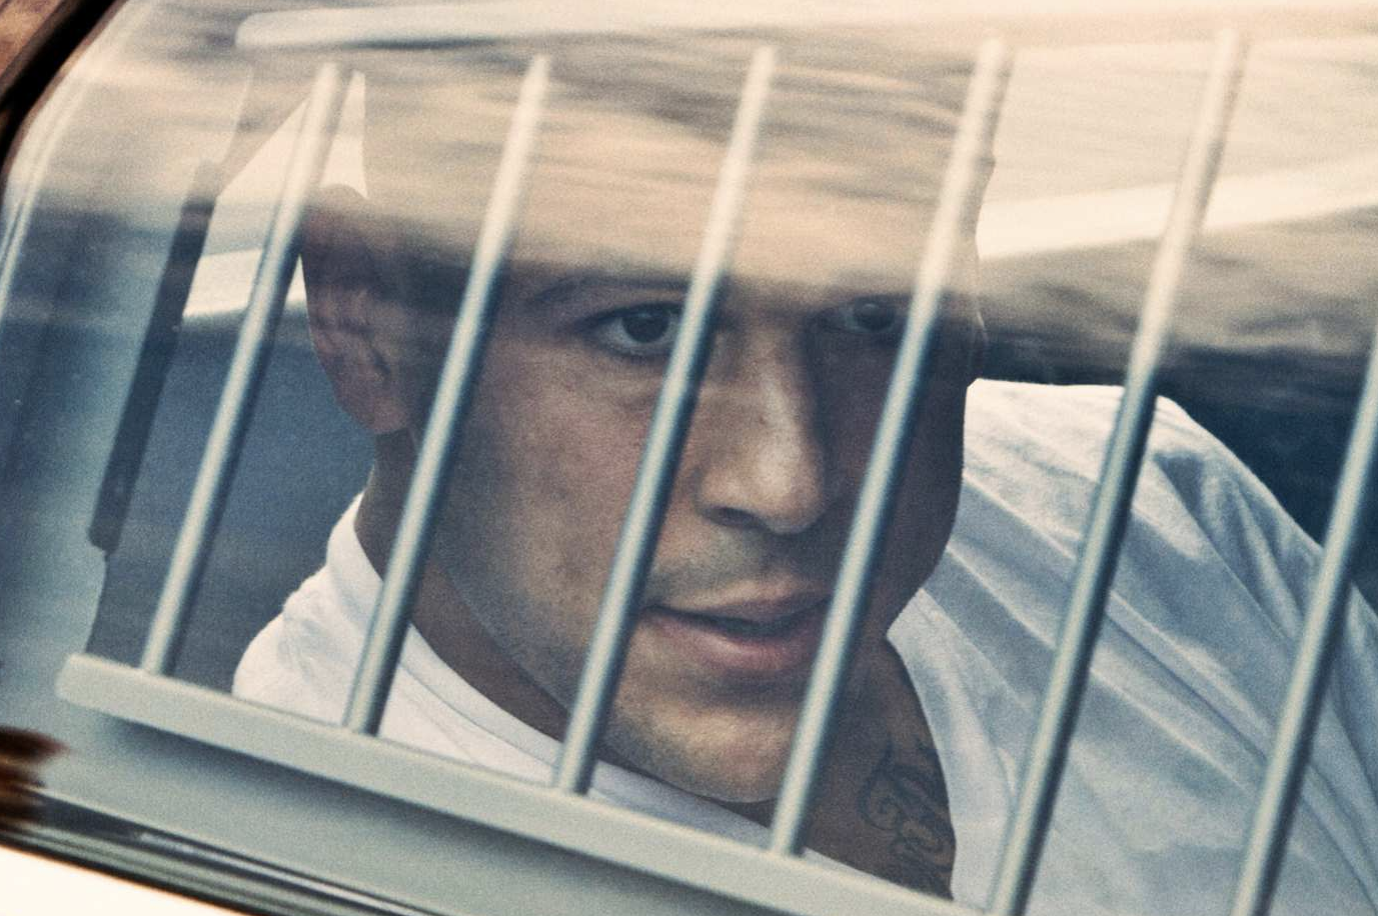 'Killer Inside': Netflix's Aaron Hernandez Documentary Doesn't Have The Answers